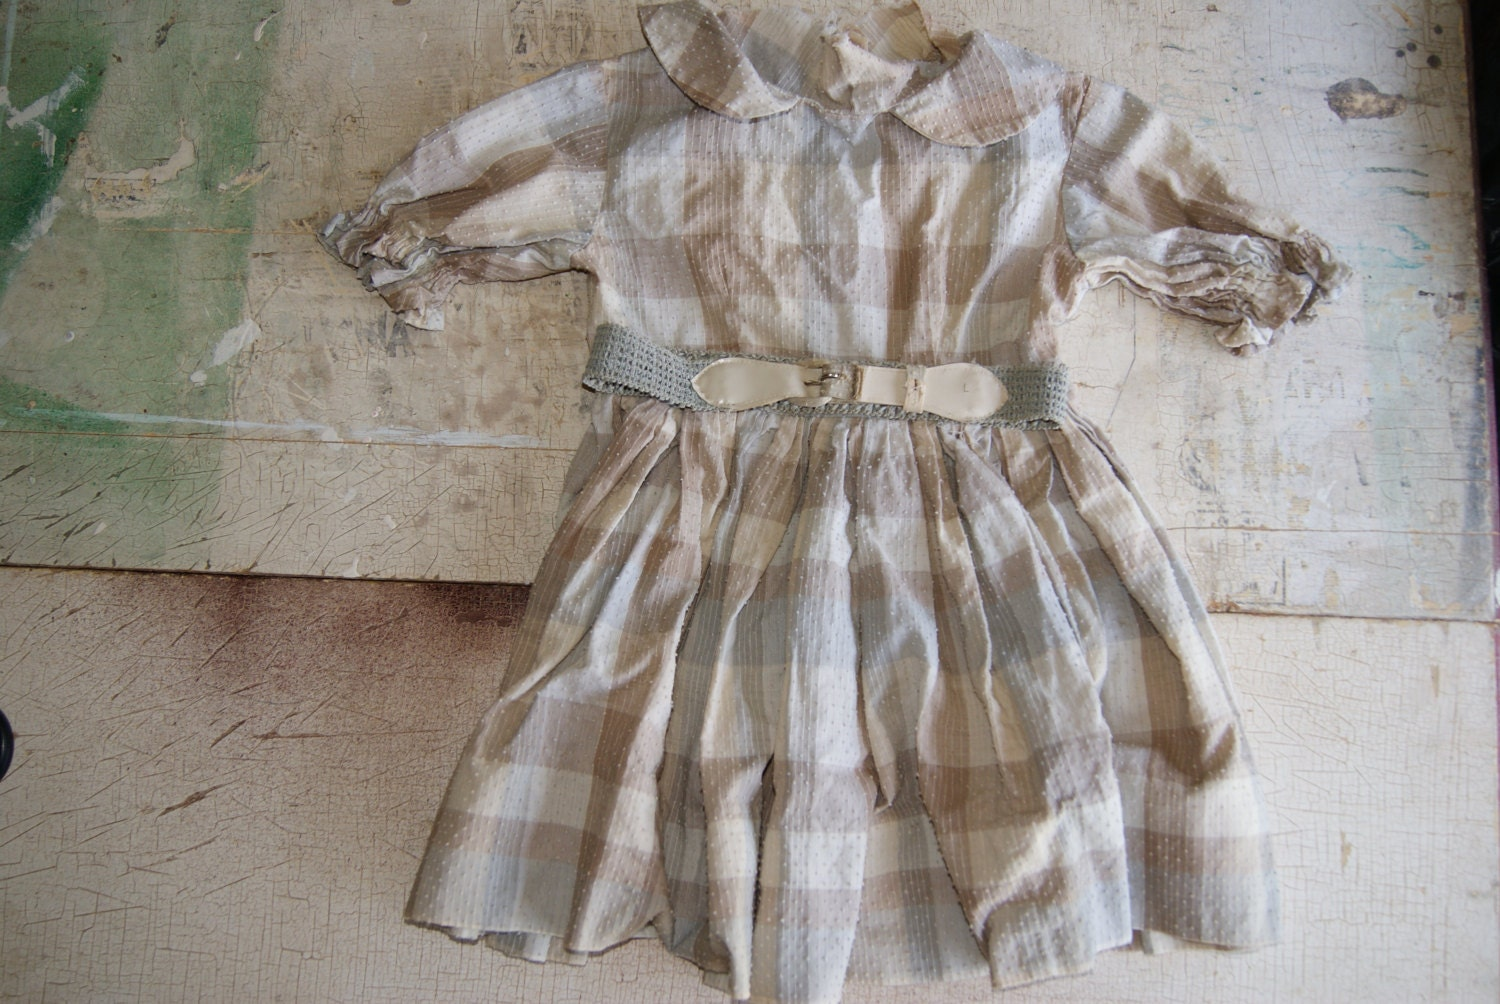 Vintage Handmade Childs Or Doll Dress With Belt Dotted Swiss 1950s